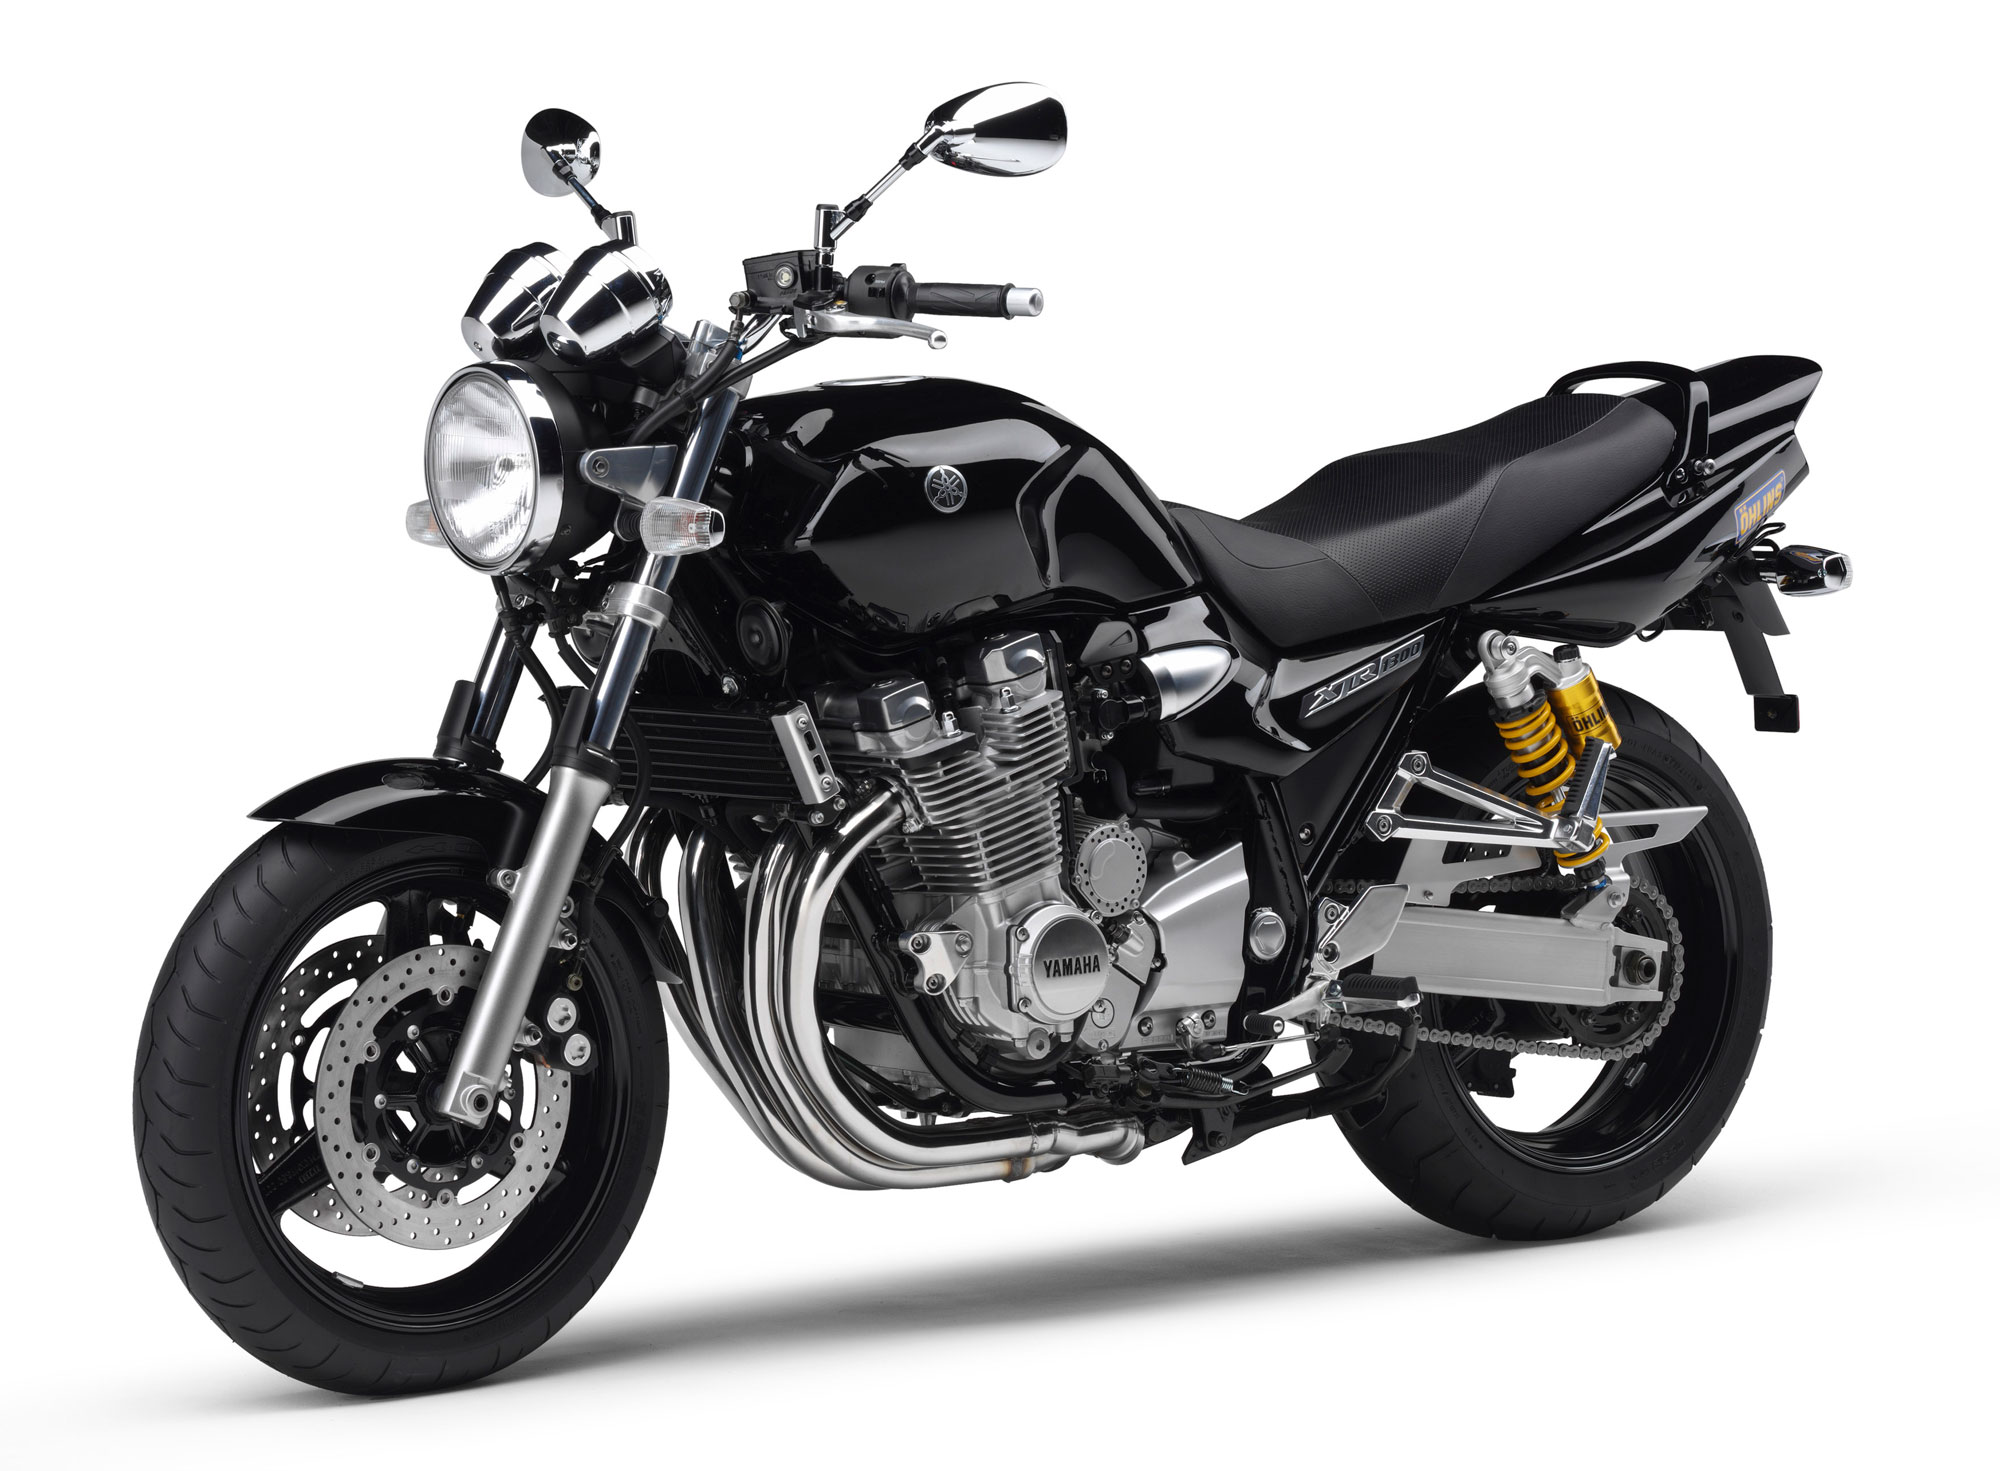 yamaha xjr1300 specs 2008 2009 autoevolution. Black Bedroom Furniture Sets. Home Design Ideas